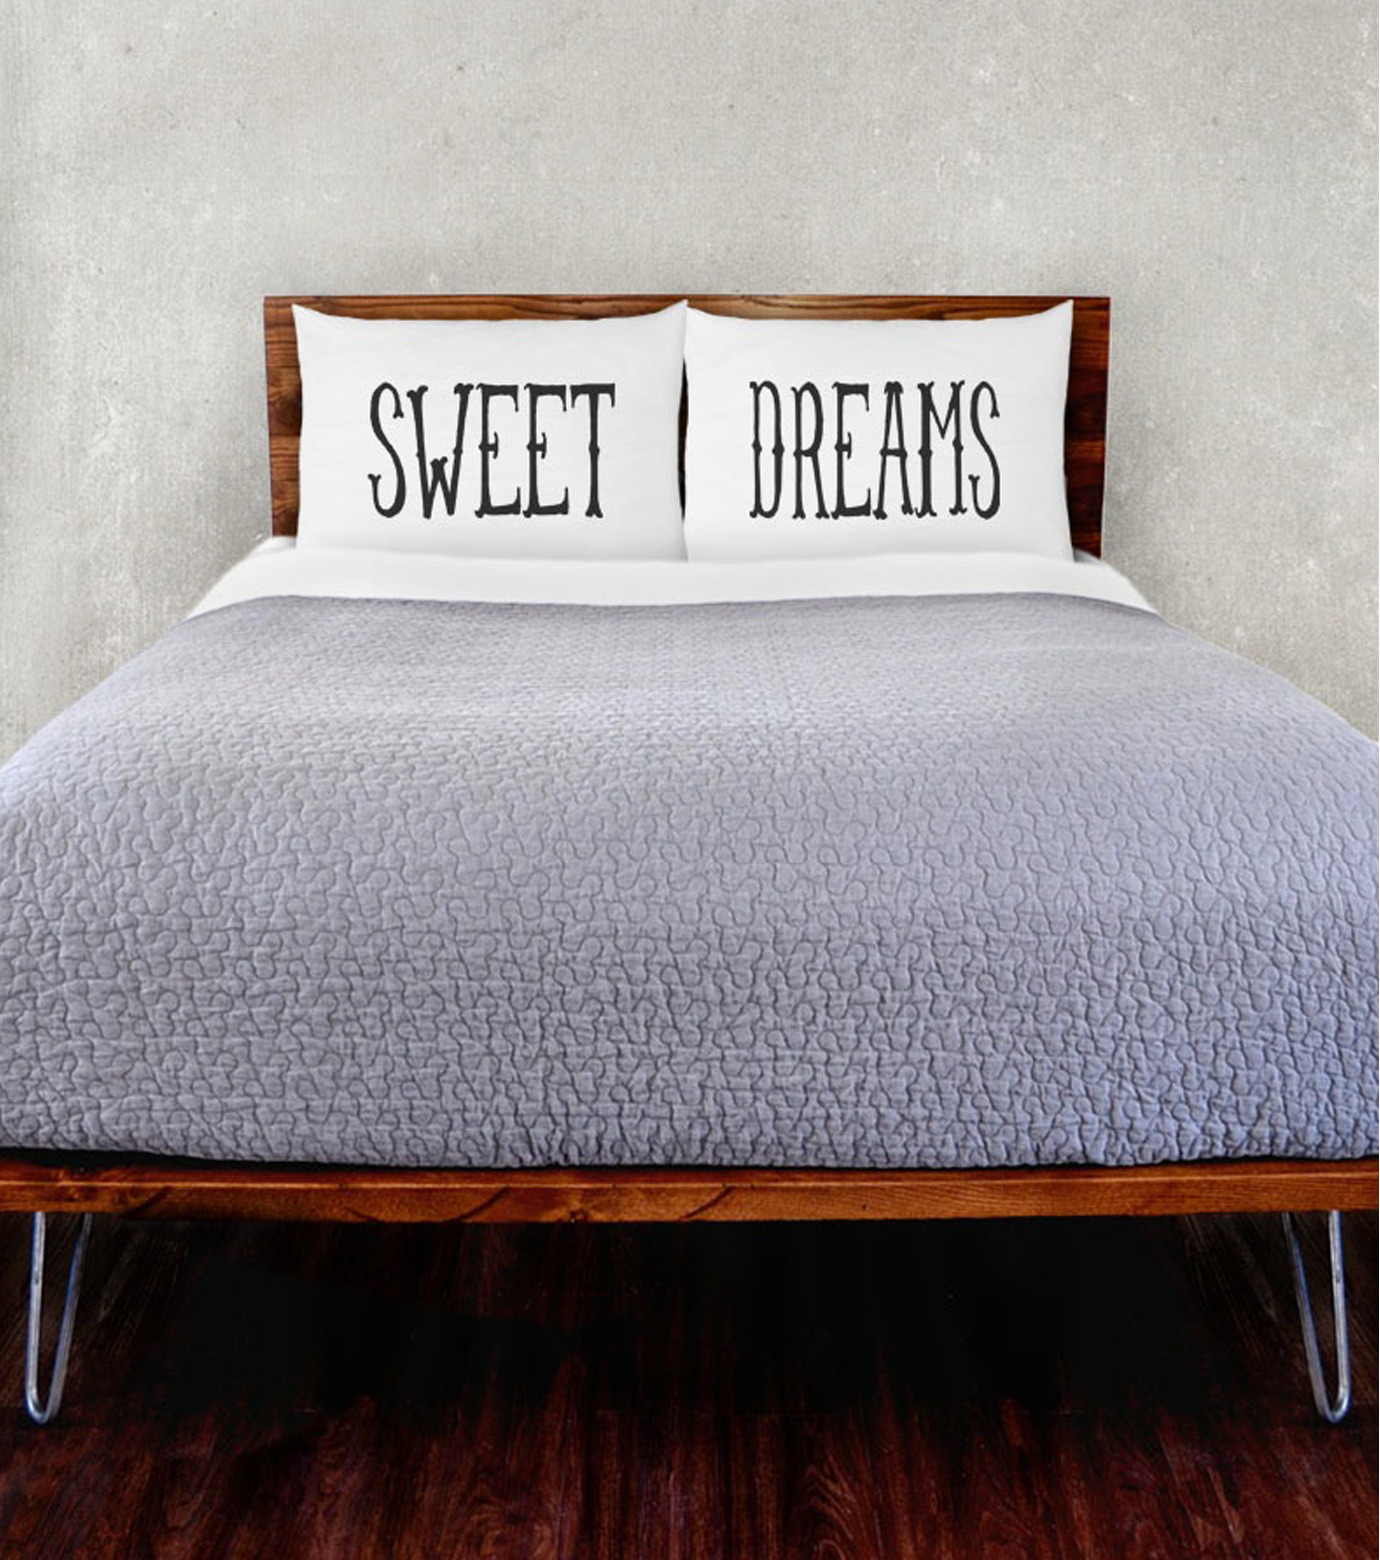 THE RISE AND FALL()のSWEET DREAMS PILLOWCASE SET-WHITE(インテリア/interior)-RFB1231-4 拡大詳細画像2